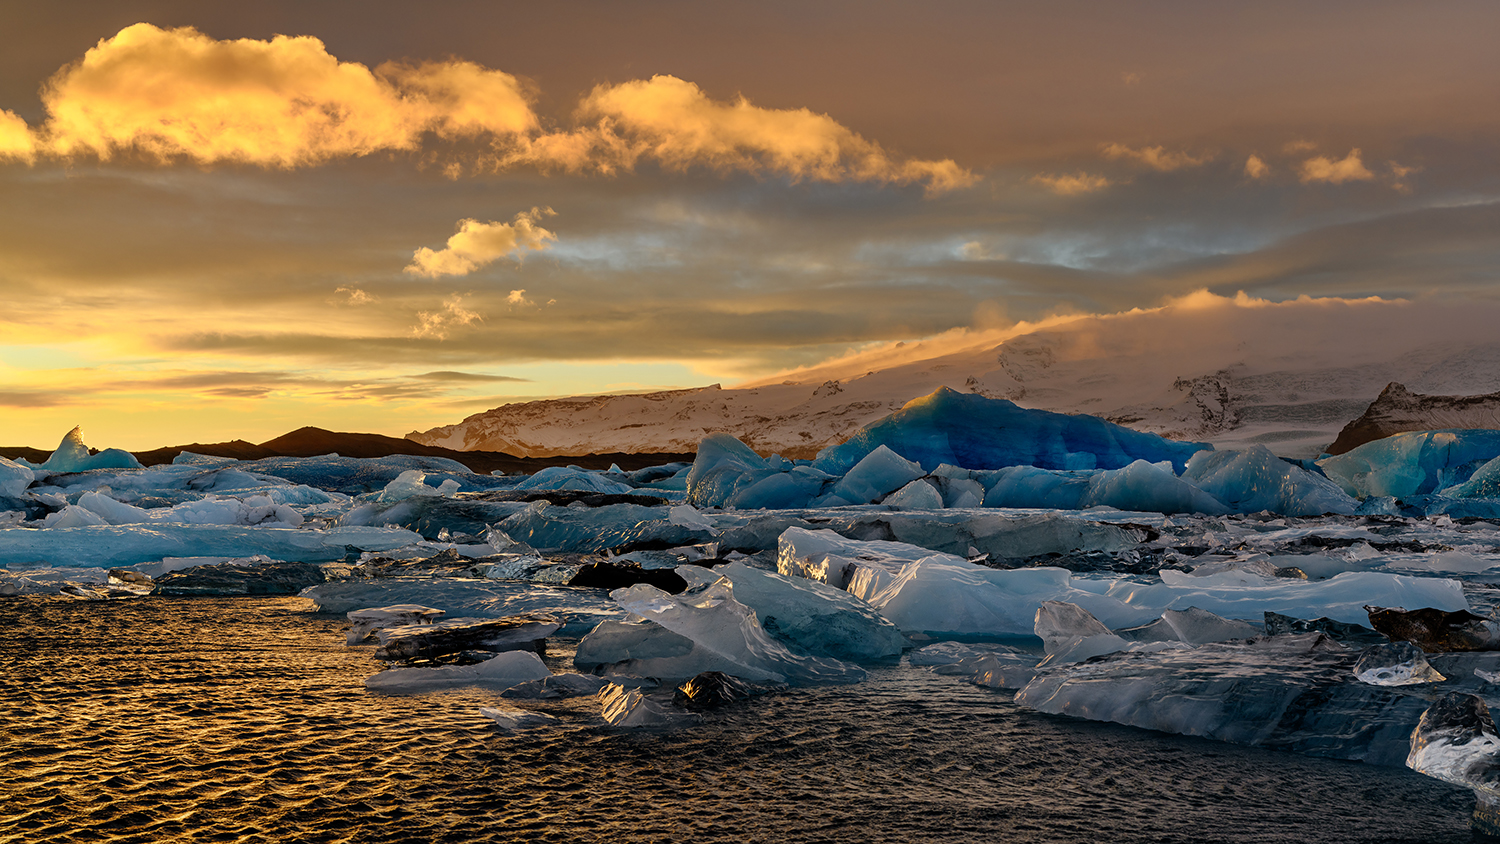 Ice floes on Jokulsarlon lake, a famous glacier lagoon in Vatnajokull National Park, Iceland